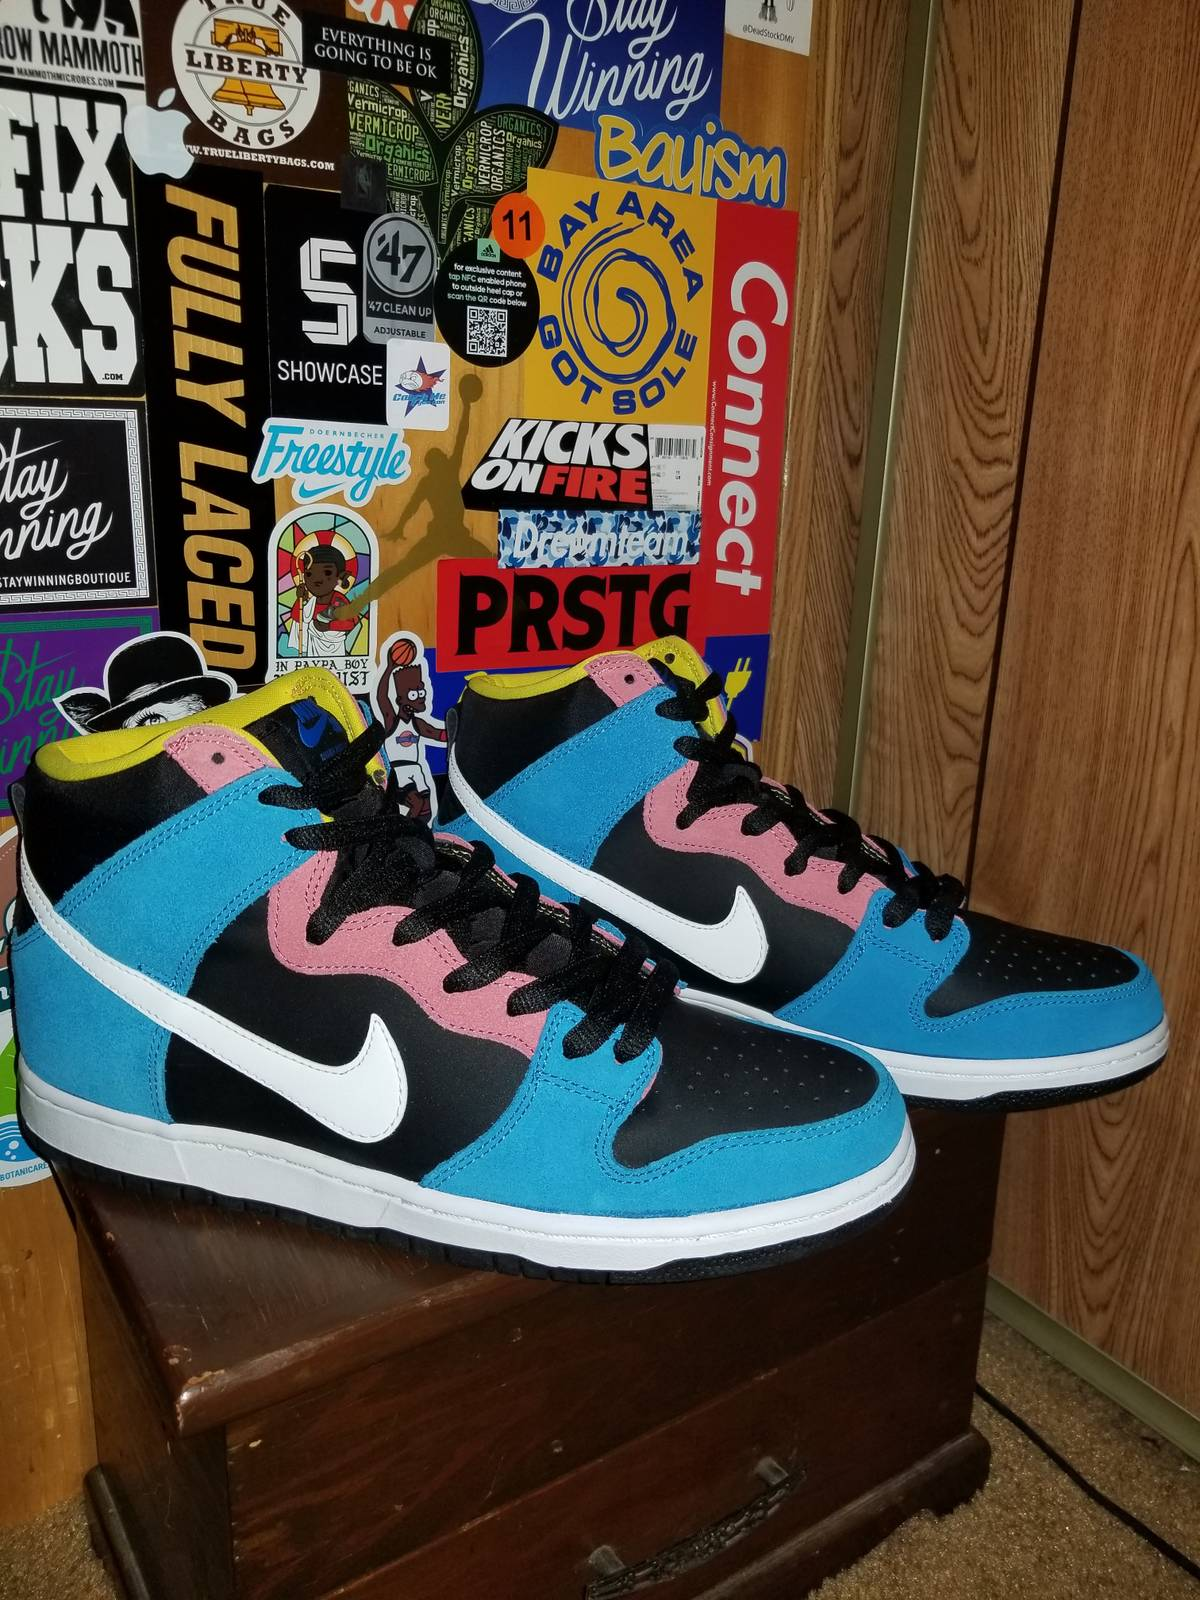 huge selection of bdbad c699e Nike Nike Sb Dunk High Bazooka Joe Size 11 New Size 11 $80